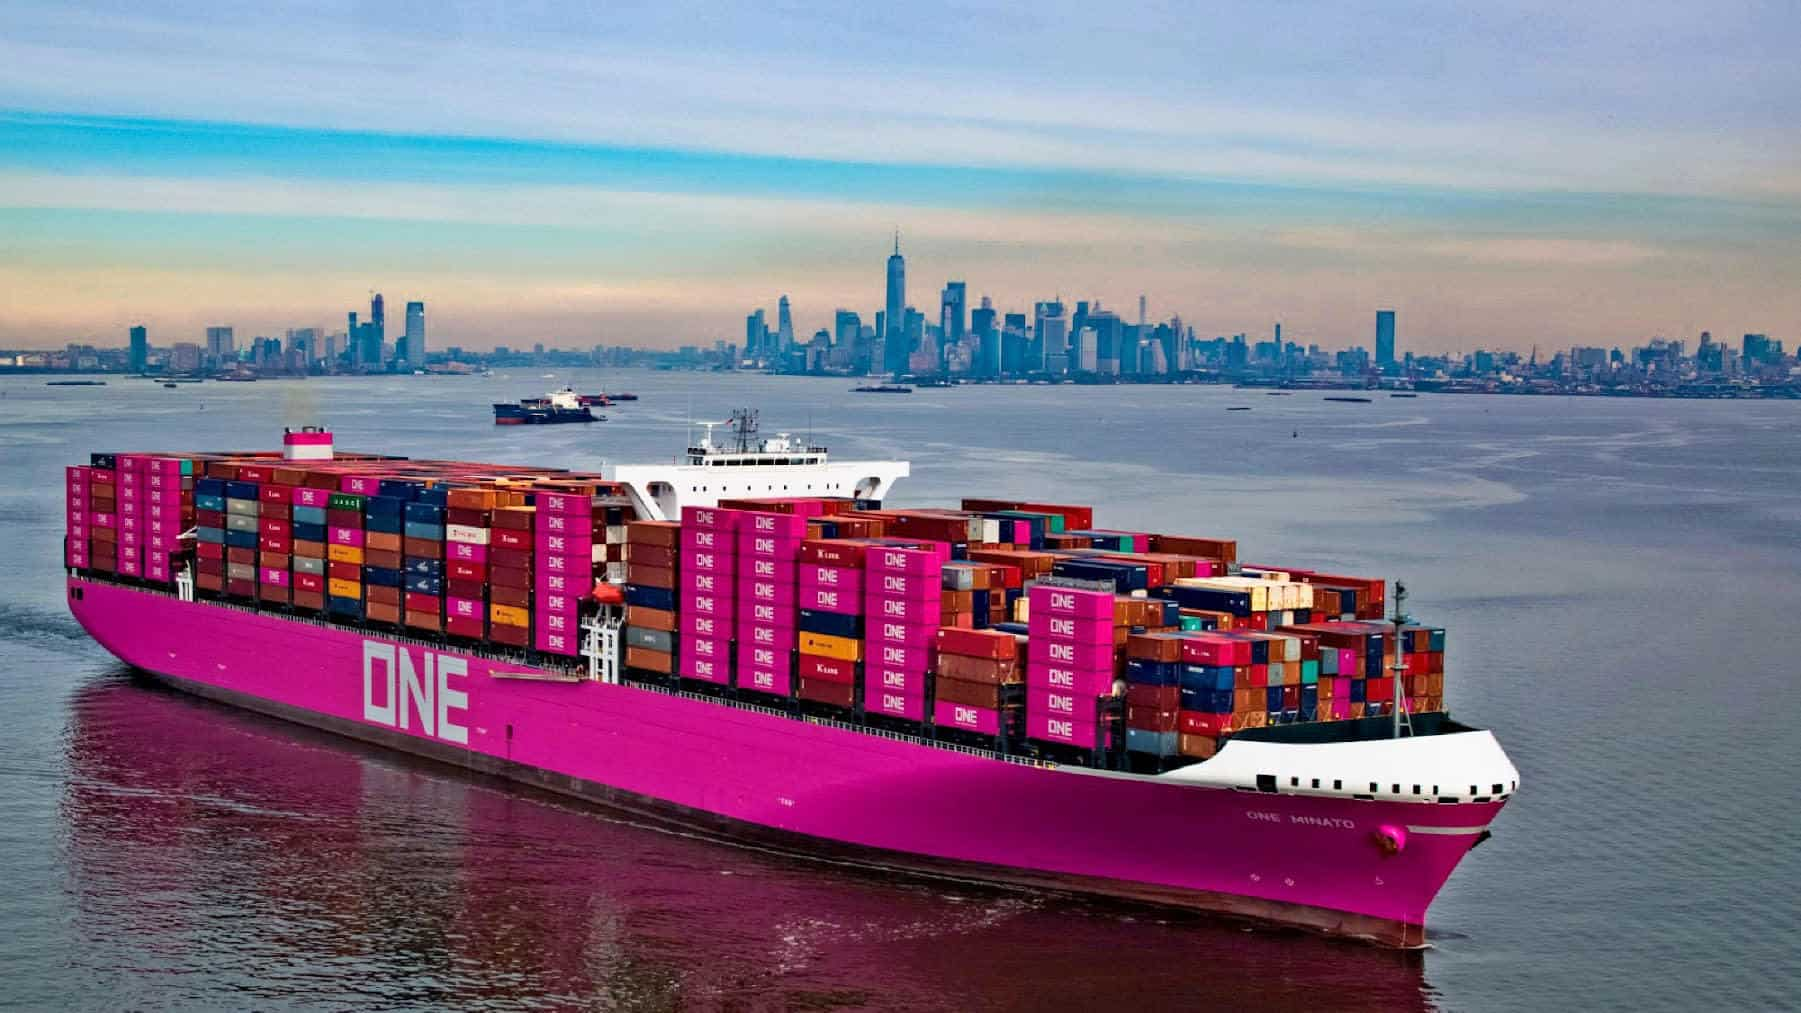 Ocean Network Express shipping line